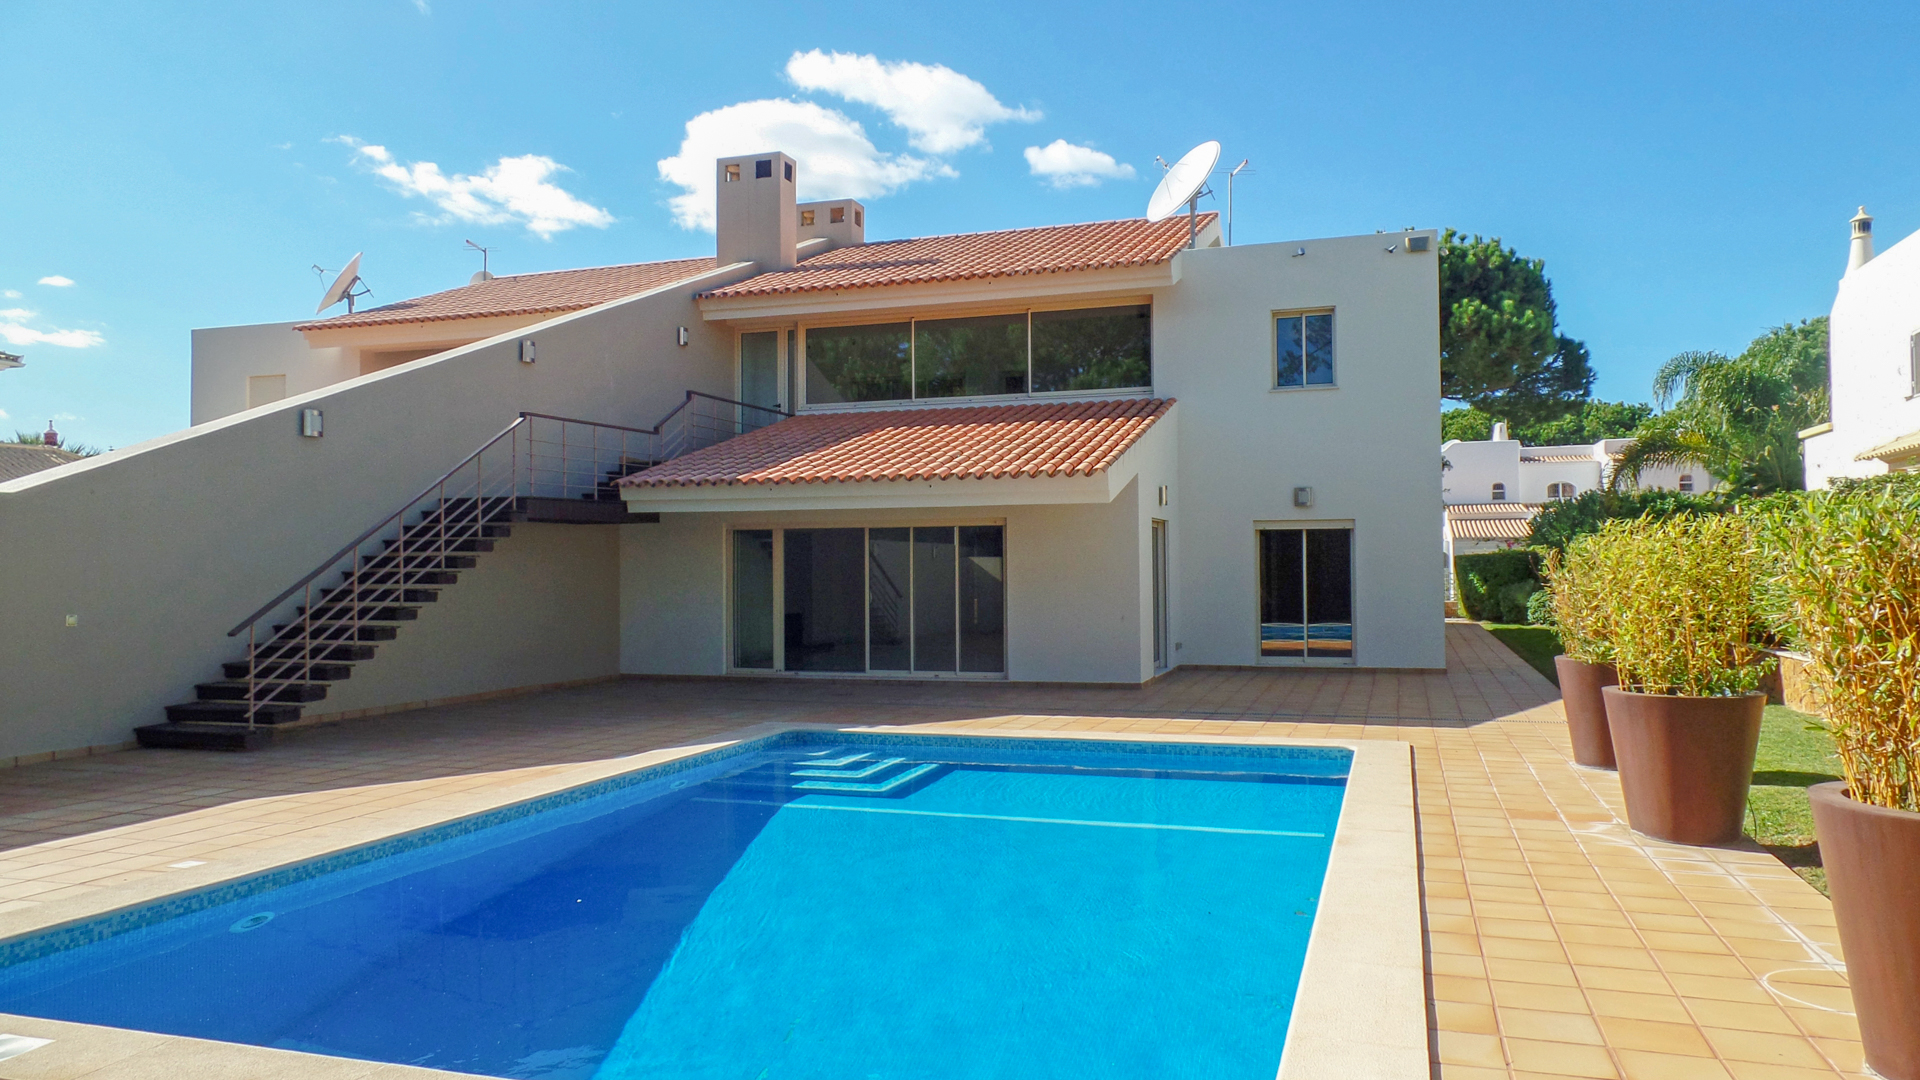 Deluxe 3 Bed Villa with Pool, on the outskirts of Vilamoura | VM740 This 3 bedroom villa with pool was renovated in 2007 and it's the perfect place for permanent living or holidays. It's located very close to Quarteira and Vilamoura, with all amenties, as well as beaches.